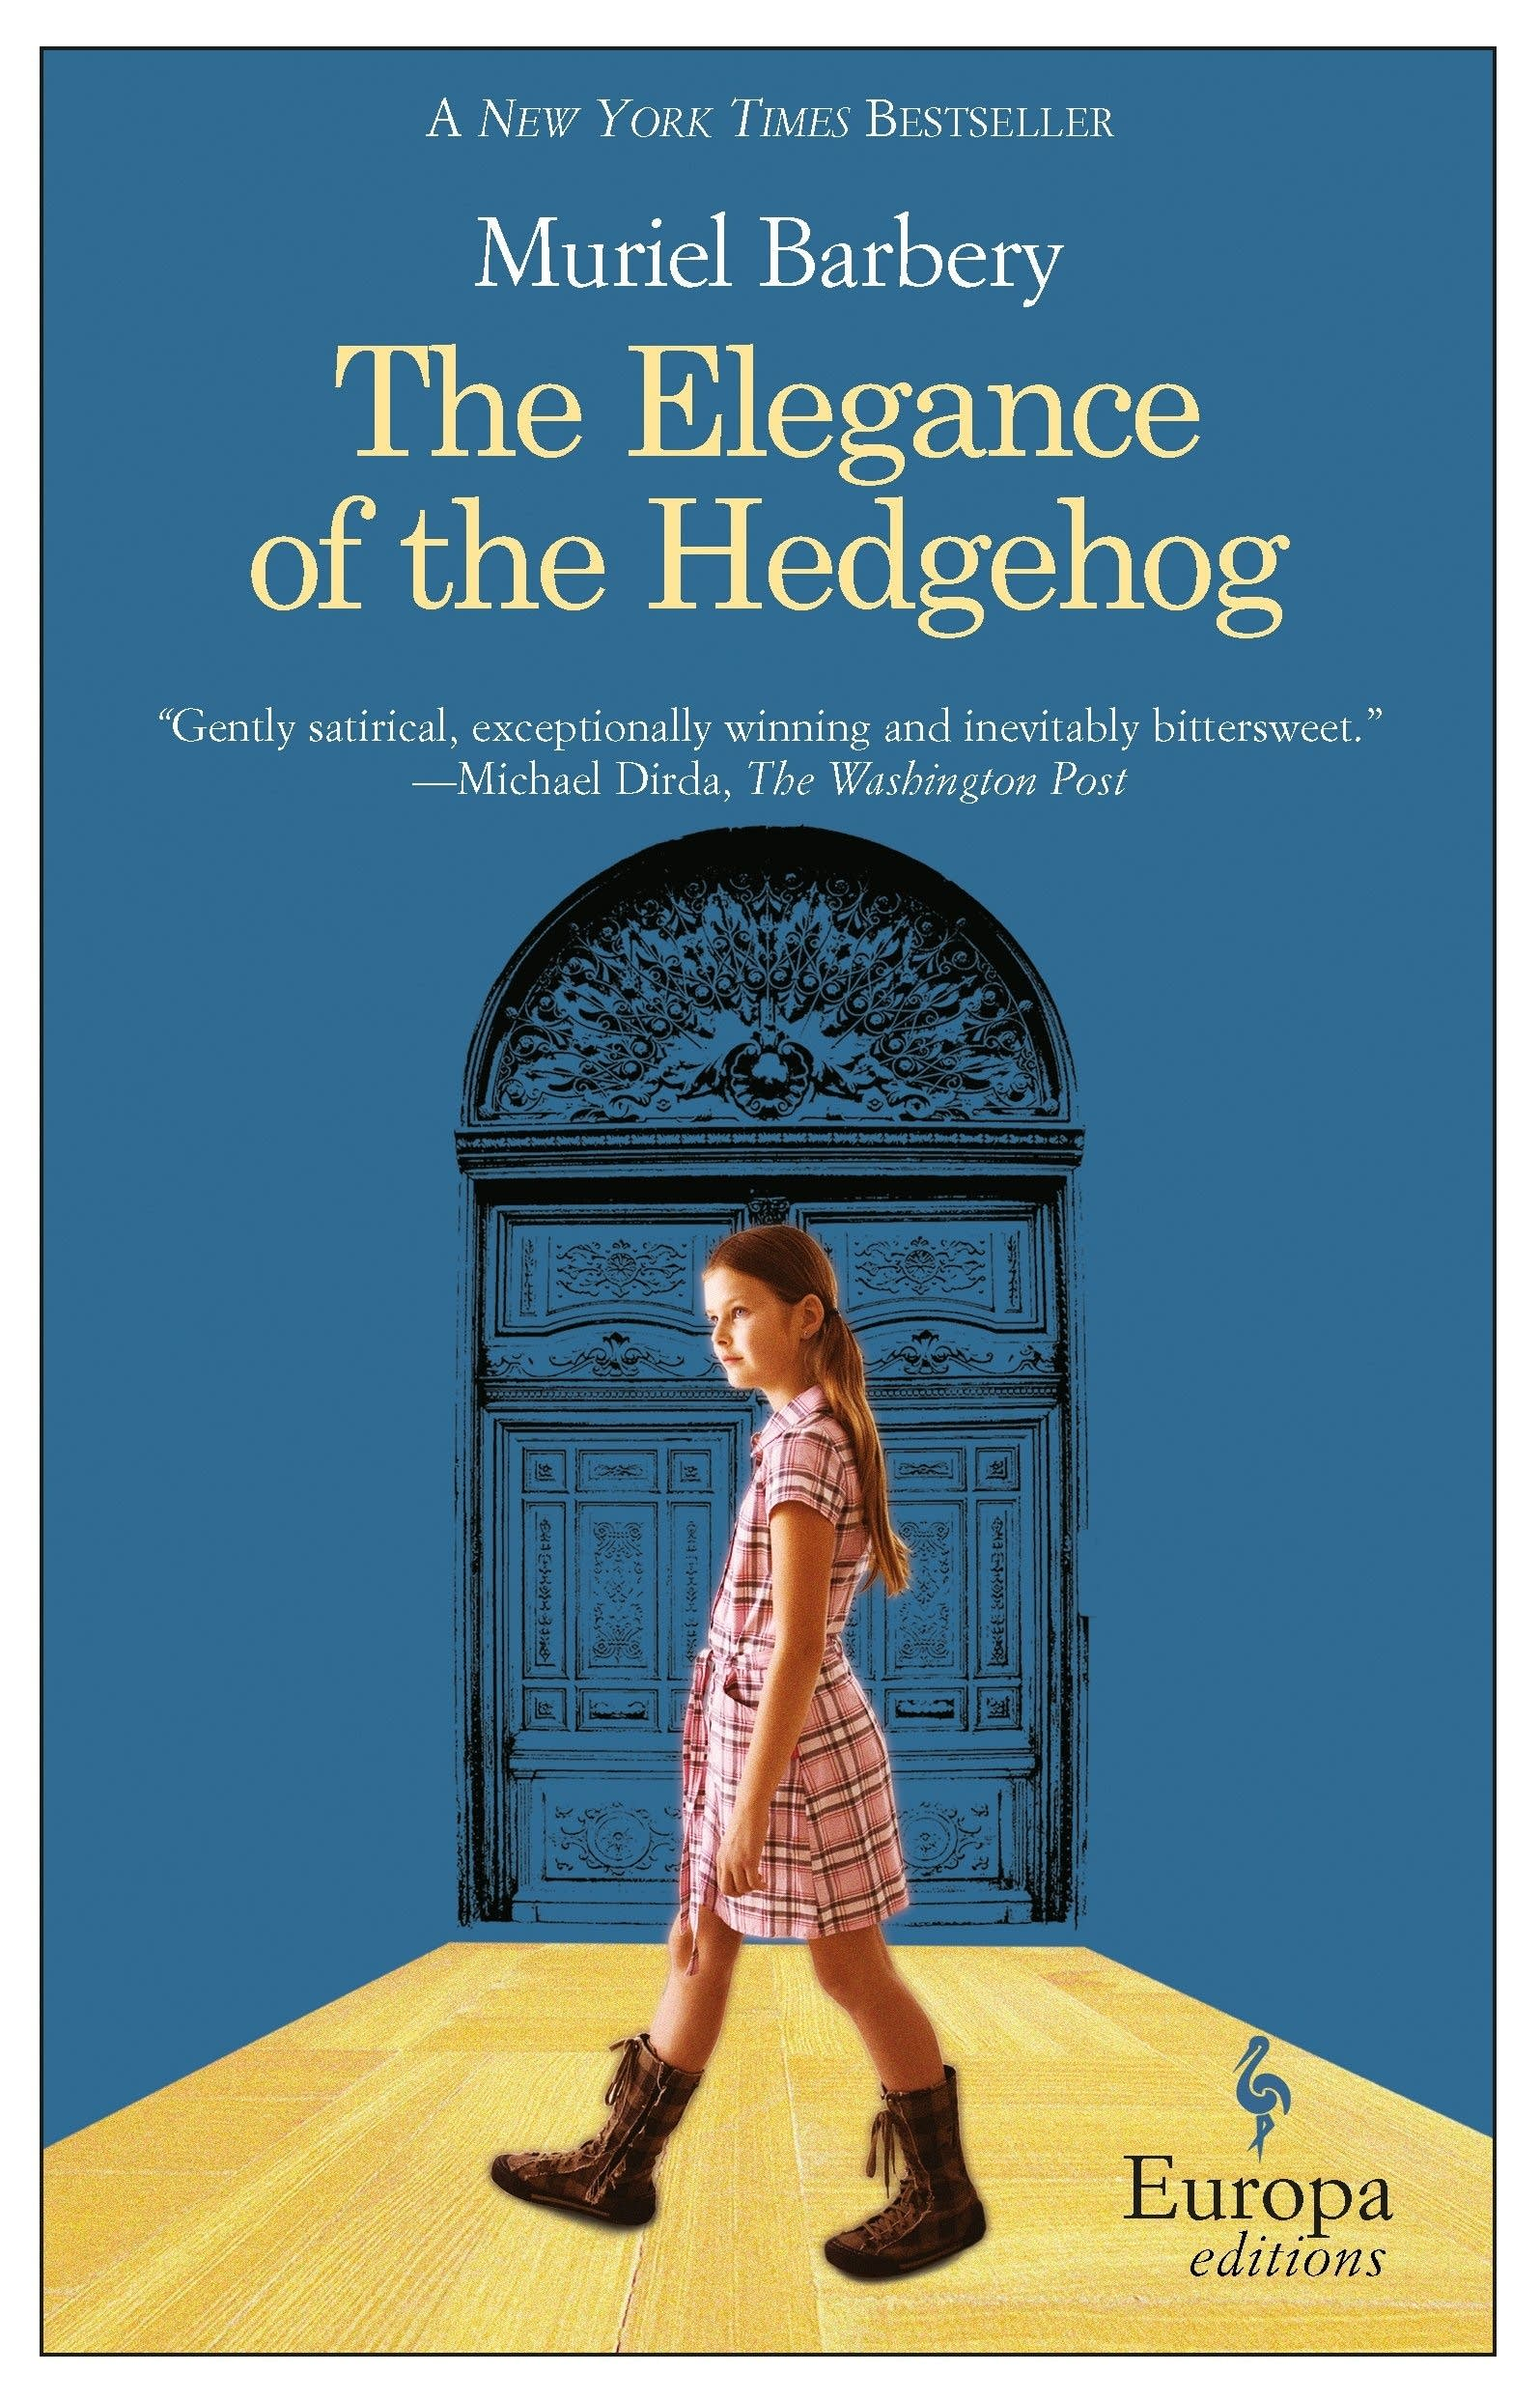 'The Elegance of the Hedgehog' by Muriel Barbery